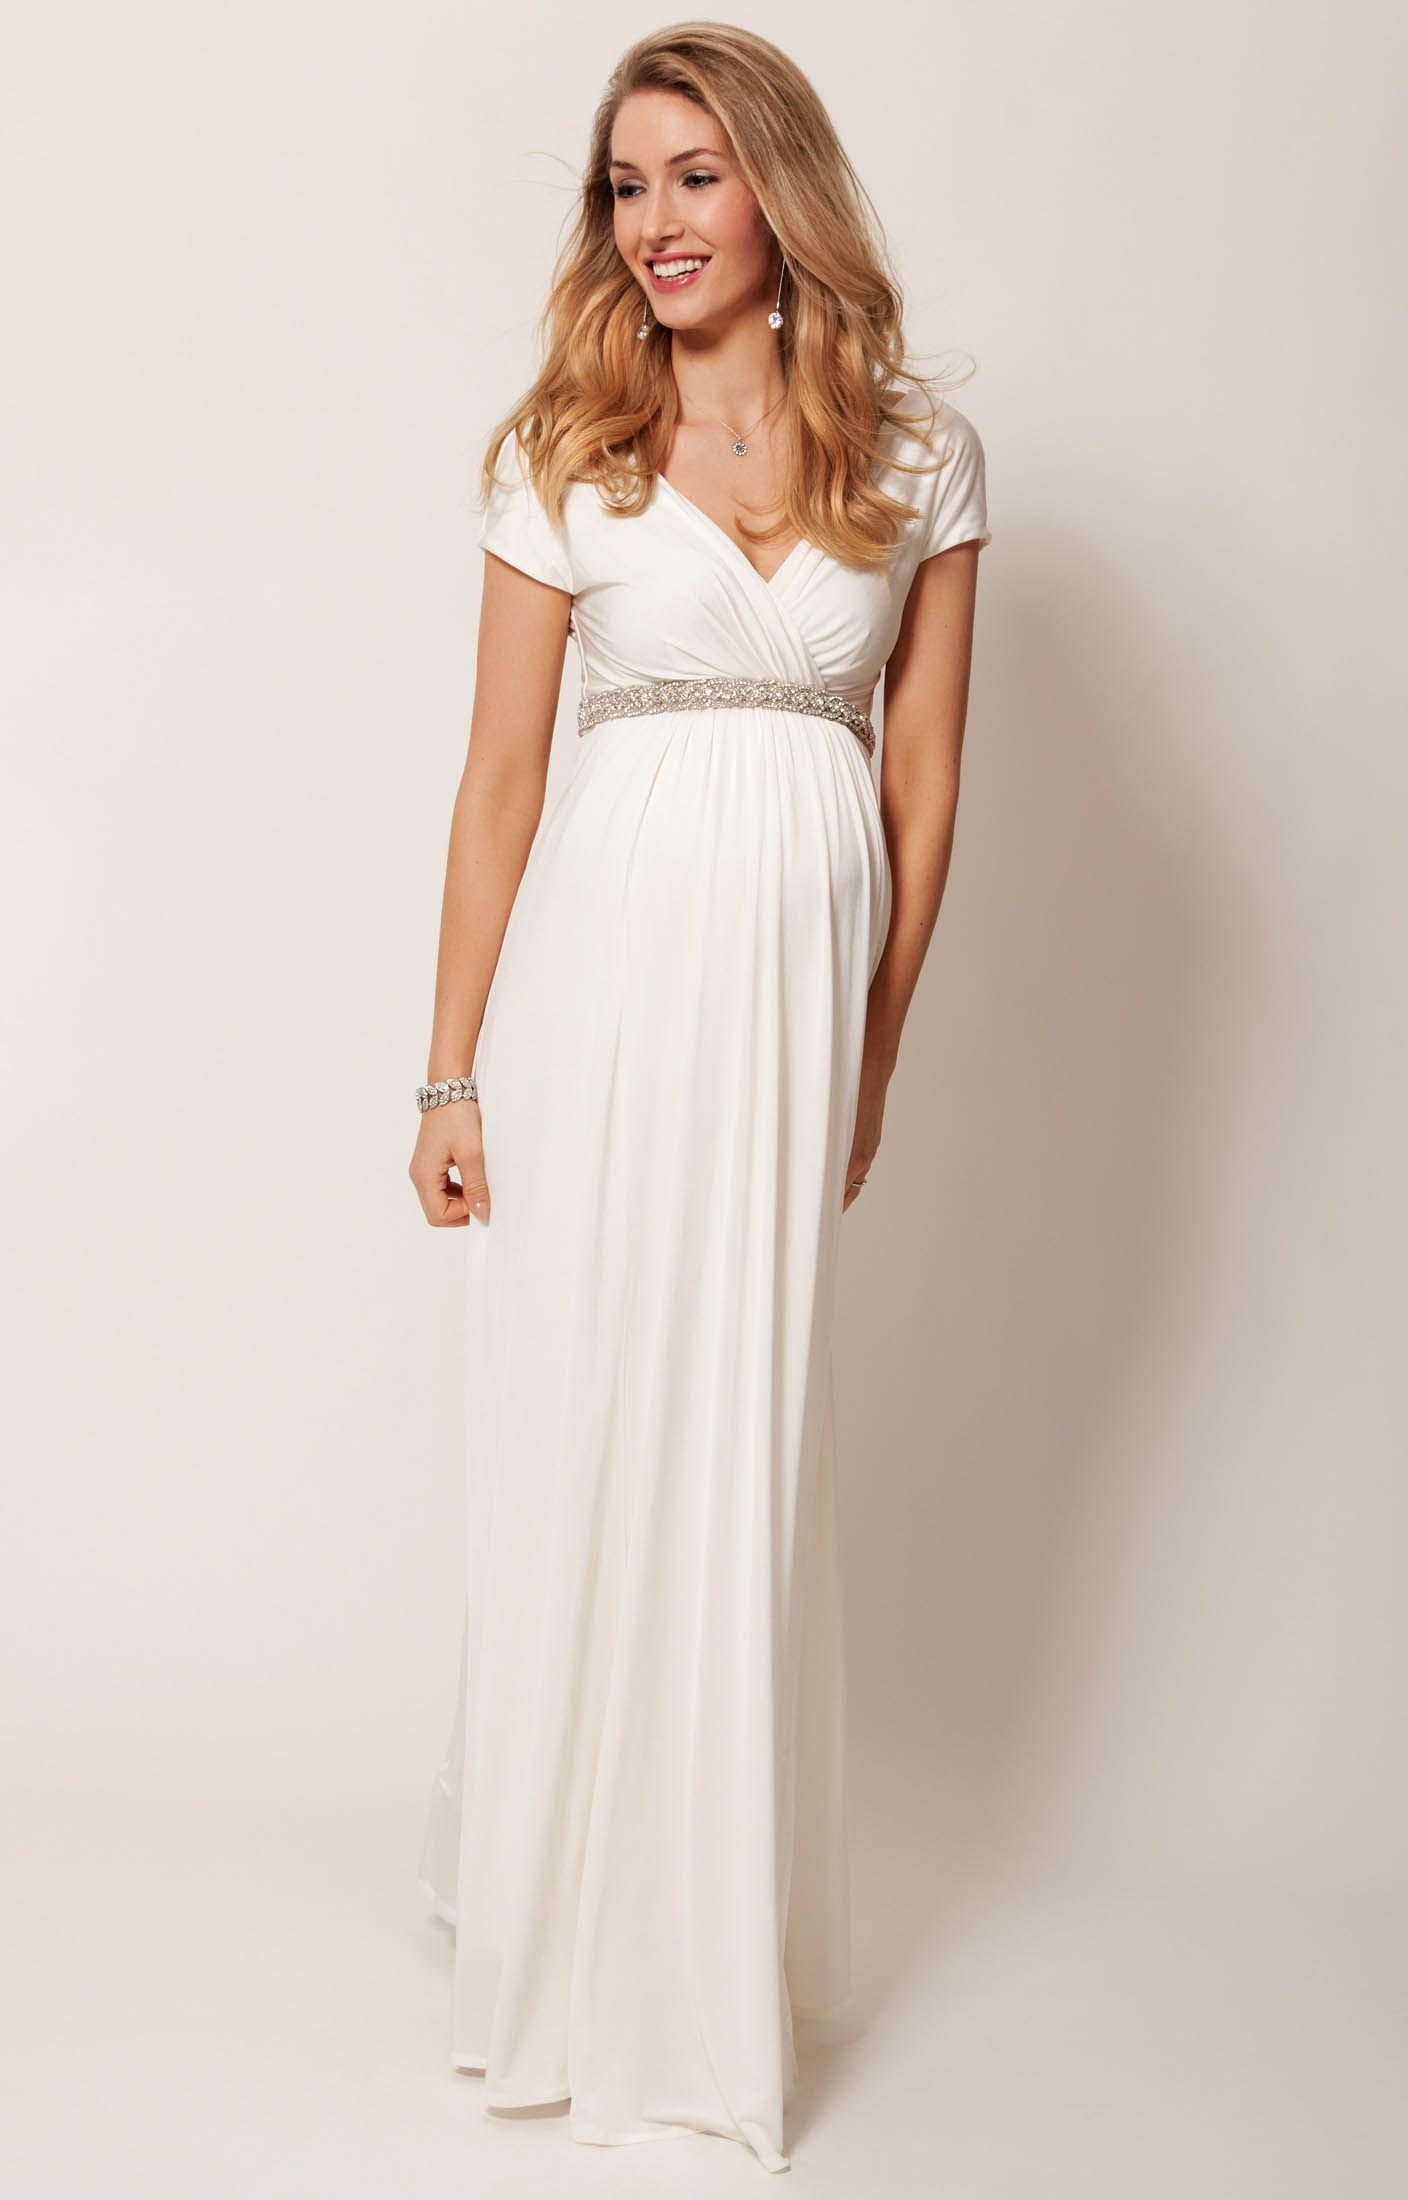 c607df31e61ef Alessandra long maternity bridal gown in ivory delivers a delicious Grecian  drape, so you'll look and feel your best, effortlessly.